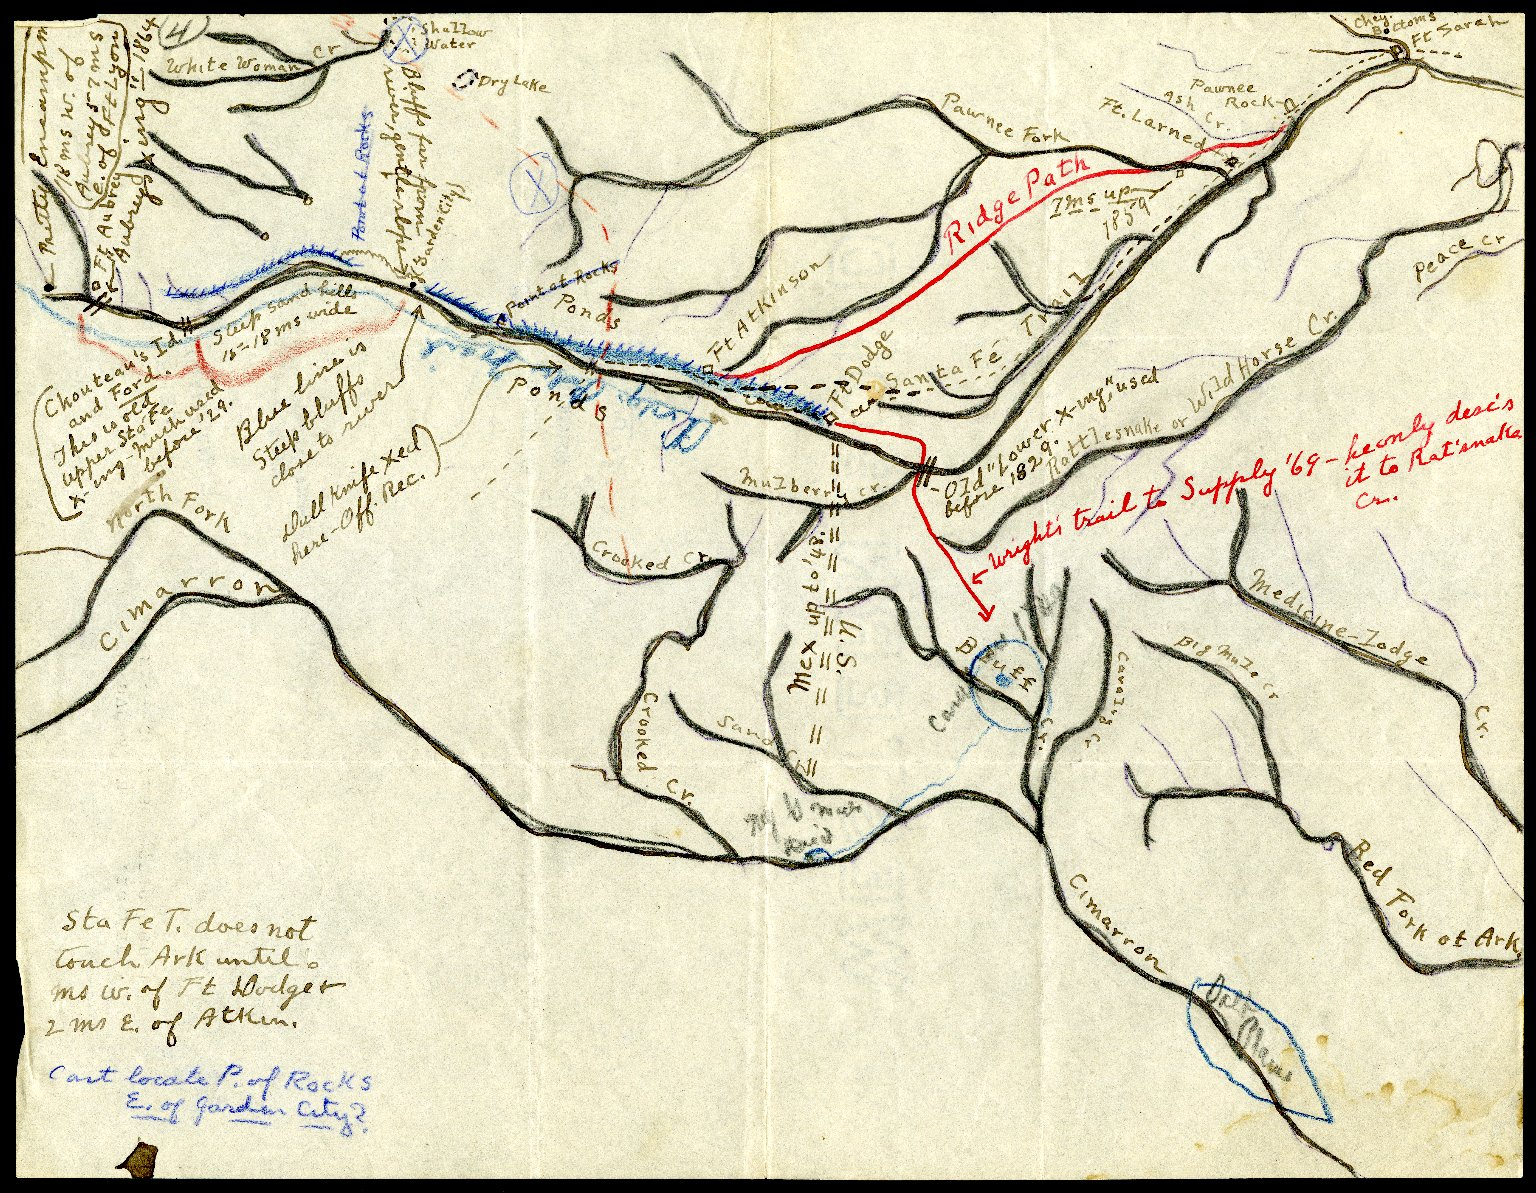 Lodge Pole Trail; Camp of the Cheyenne and Arapahoe at the time of their battle with the Kiowa and Comanche, 1838; Trail of Dull Knife